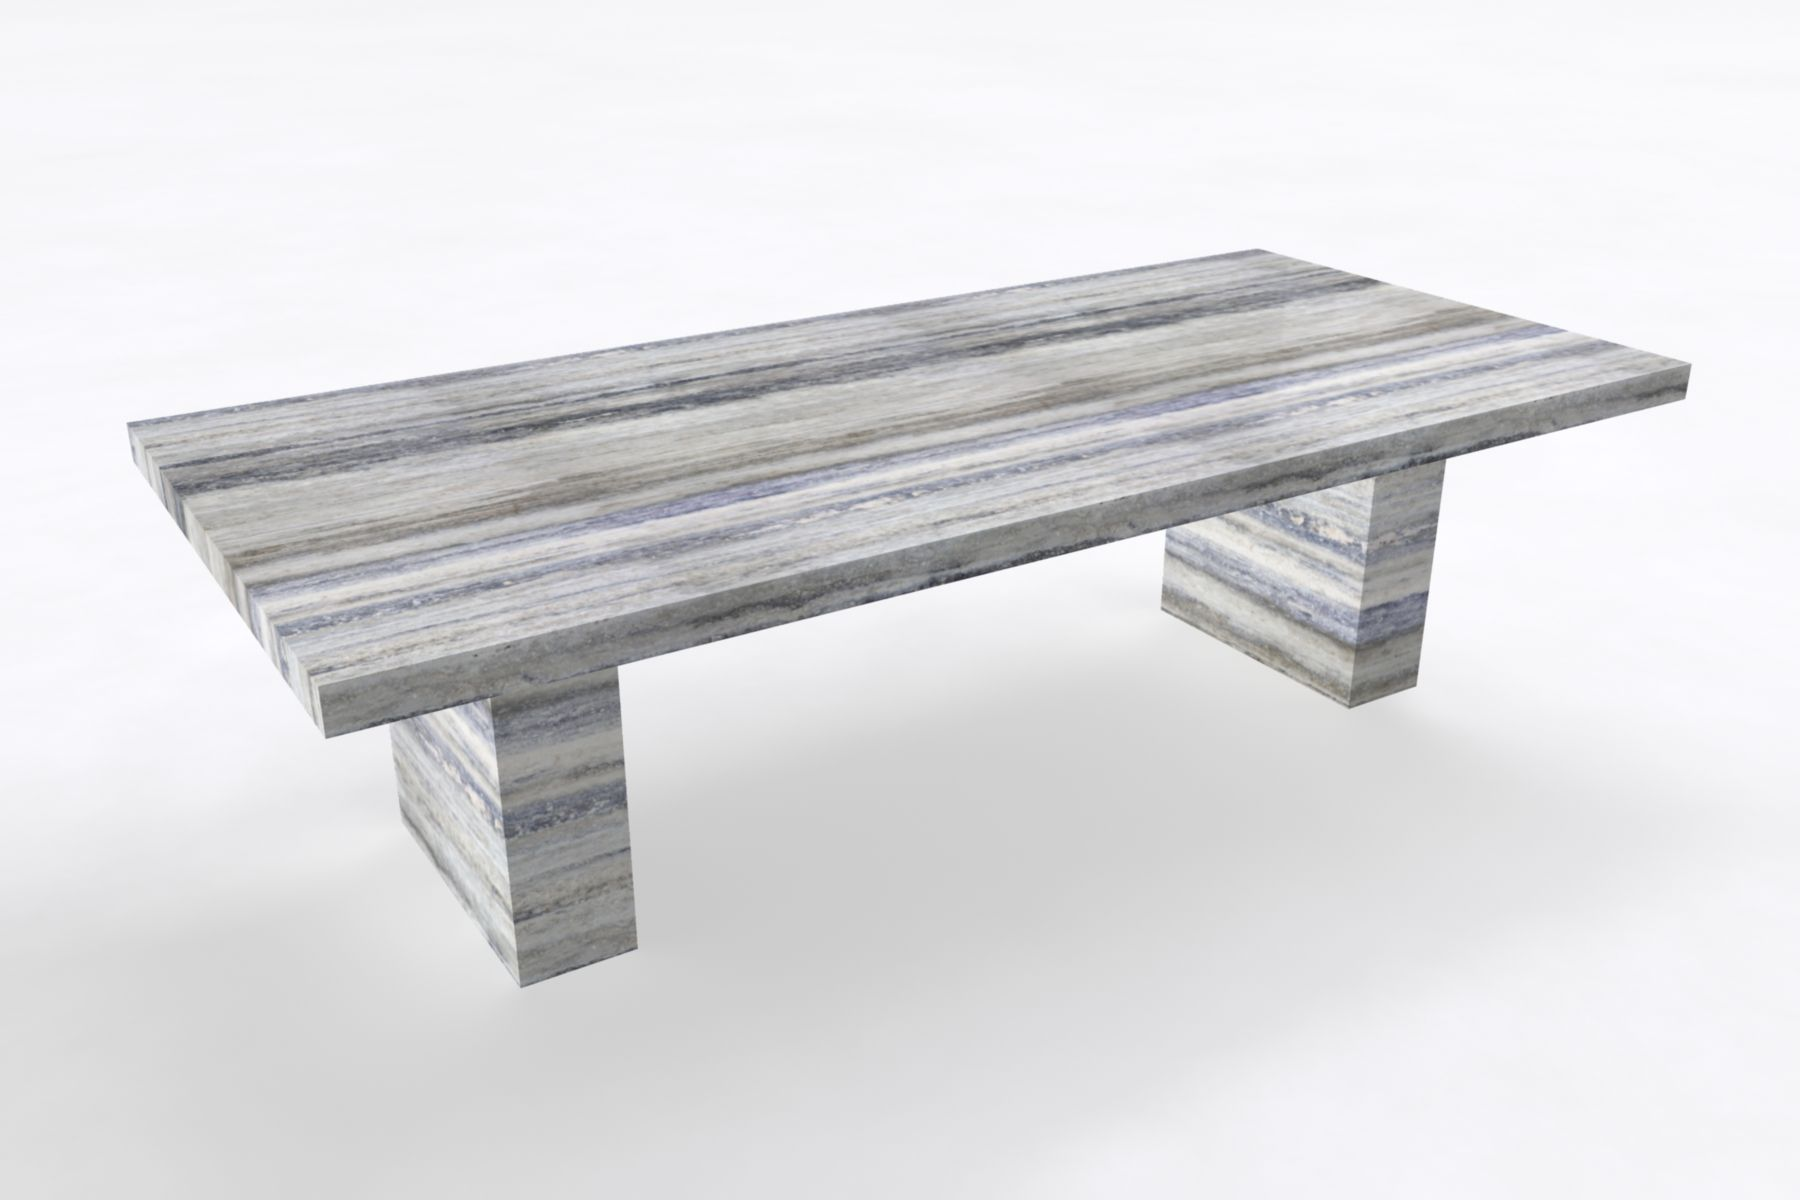 Silver Travertine Dining Table Travertine Dining Table Dining Table Marble Dining Dining Table Marble